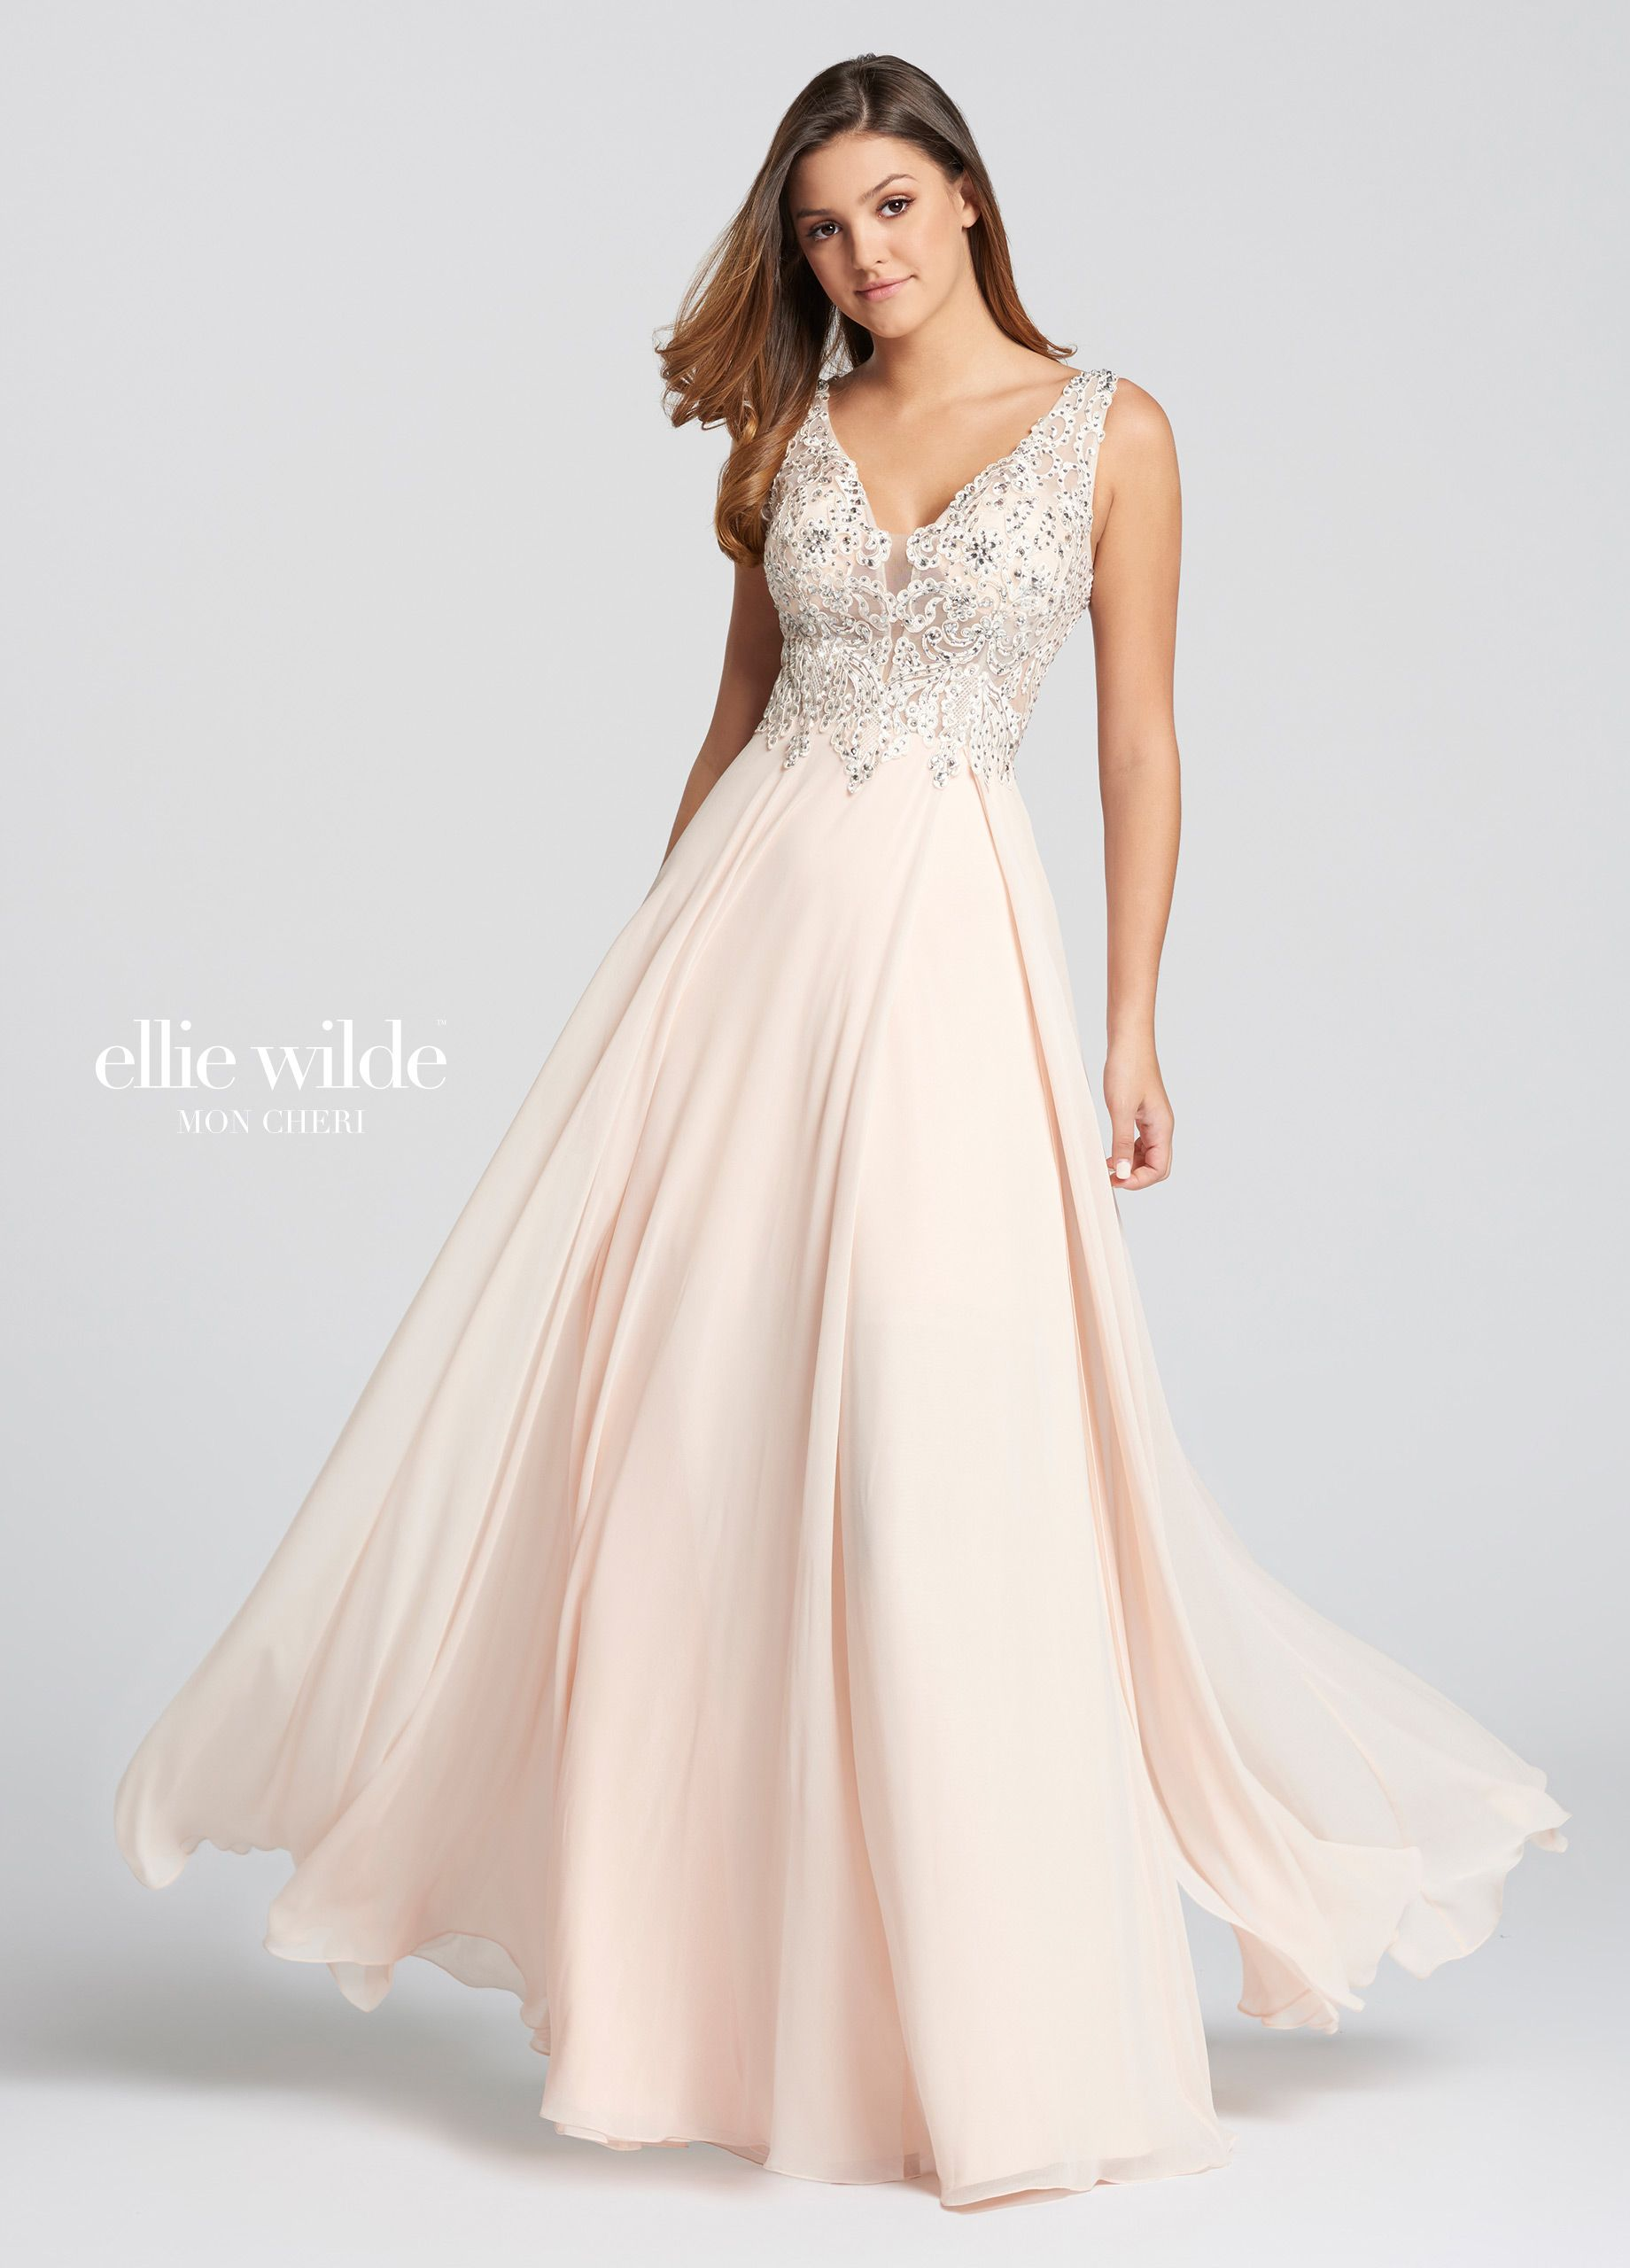 0cd62df22ce Ellie Wilde EW118150 - Sleeveless chiffon and lace slim A-line dress  featuring plunging V-neckline with tonal illusion panel and scoop back.  Bodice is made ...